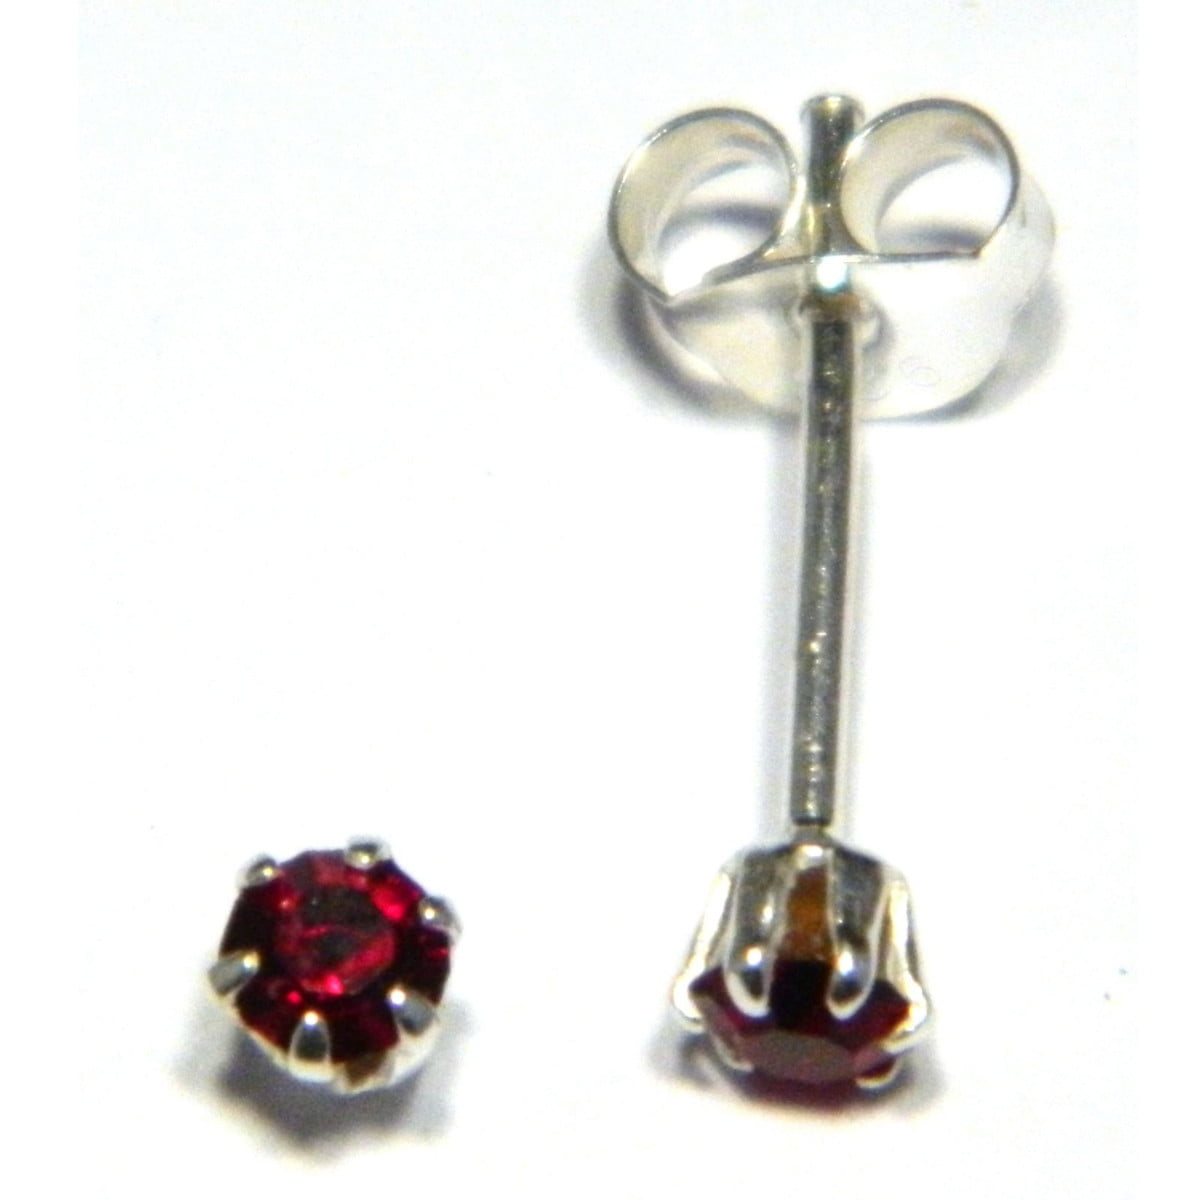 3 mm red coloured crystal stud round solitaire earrings in sterling silver